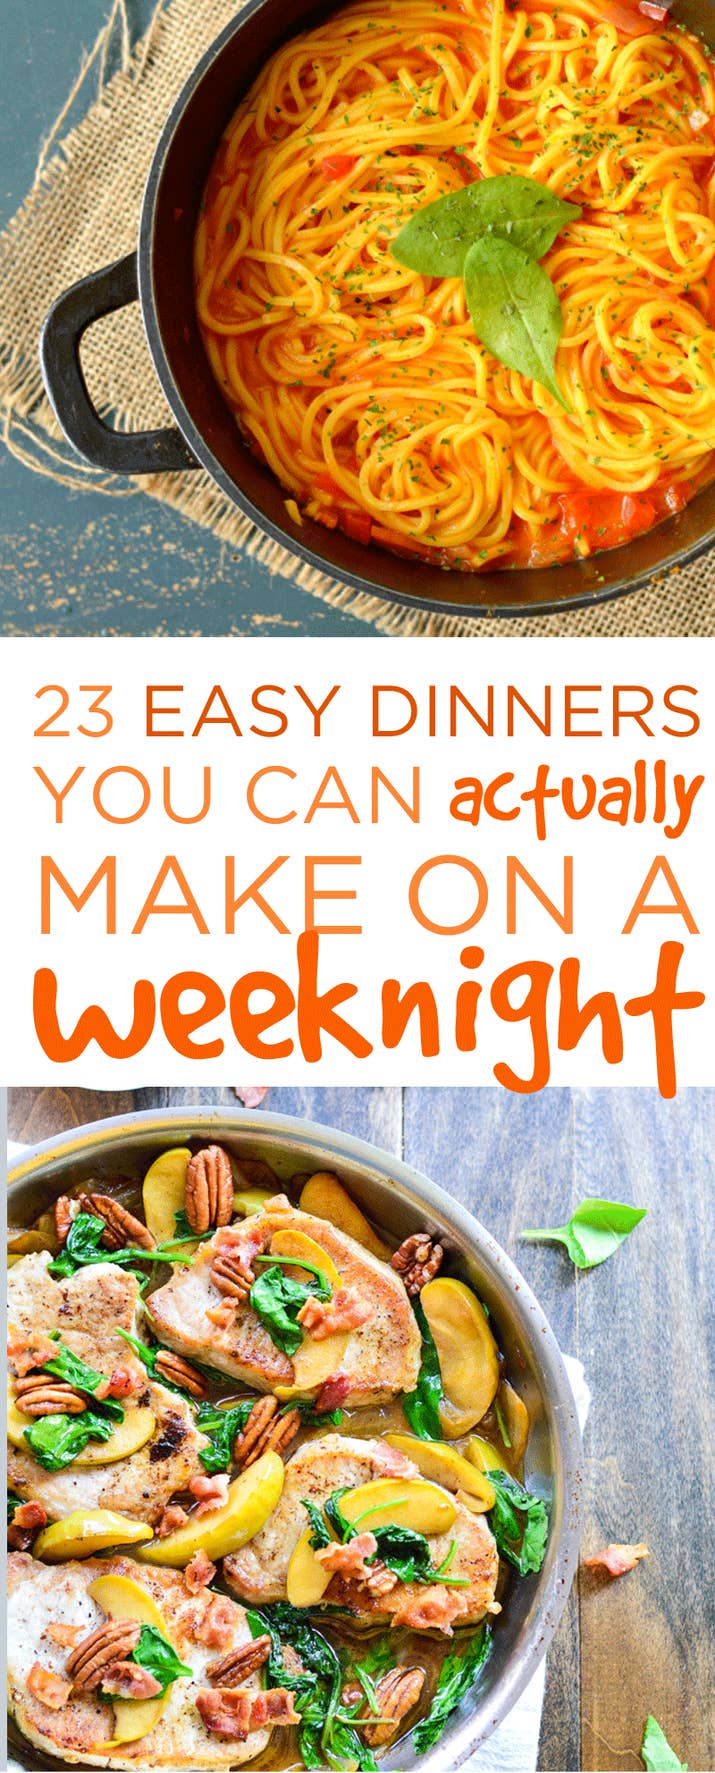 23 easy dinners you can actually make on a weeknight share on facebook share forumfinder Choice Image